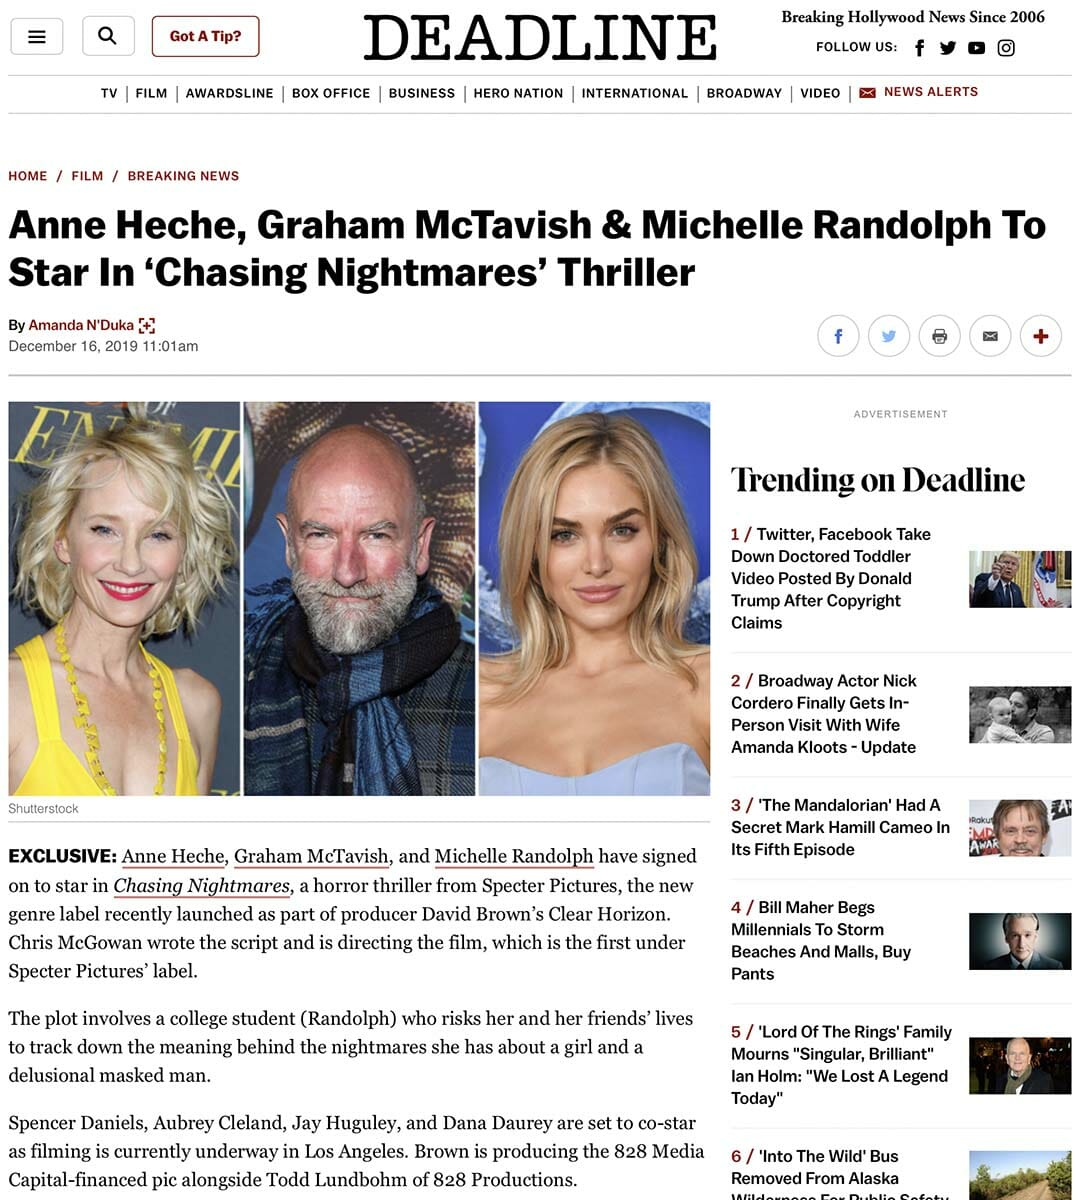 DEADLINE: Anne Heche, Graham McTavish & Michelle Randolph To Star In 'Chasing Nightmares' Thriller